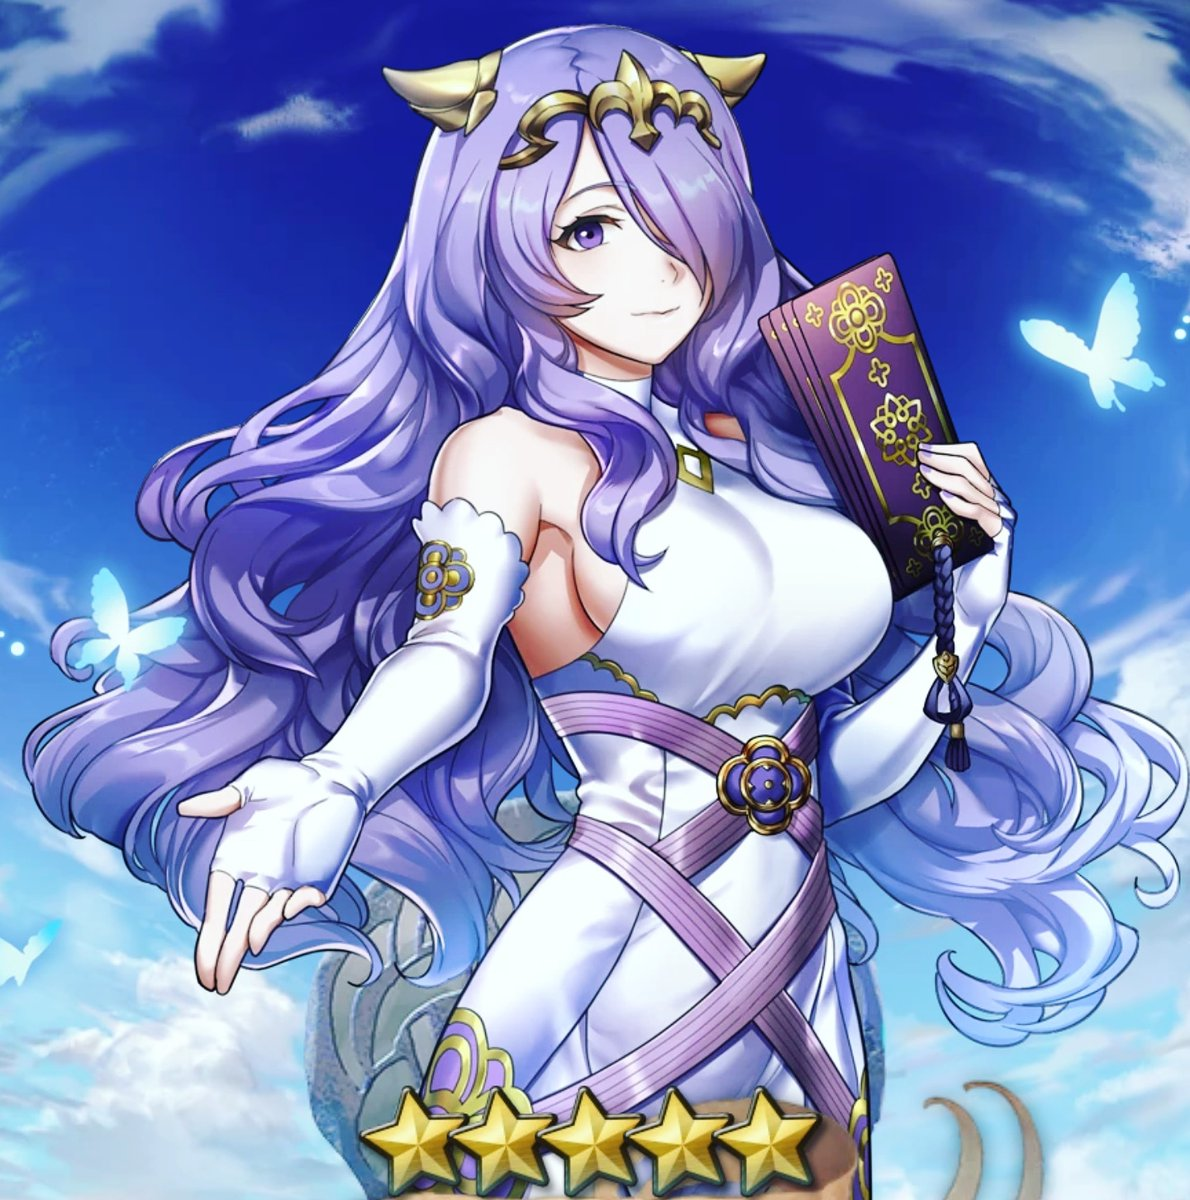 My orbs are gone.. But my Camilla collection is now complete. Bless Naga. Good luck on your pulls. #FEH #FEHeroes #FireEmblem #FireEmblemHeroes